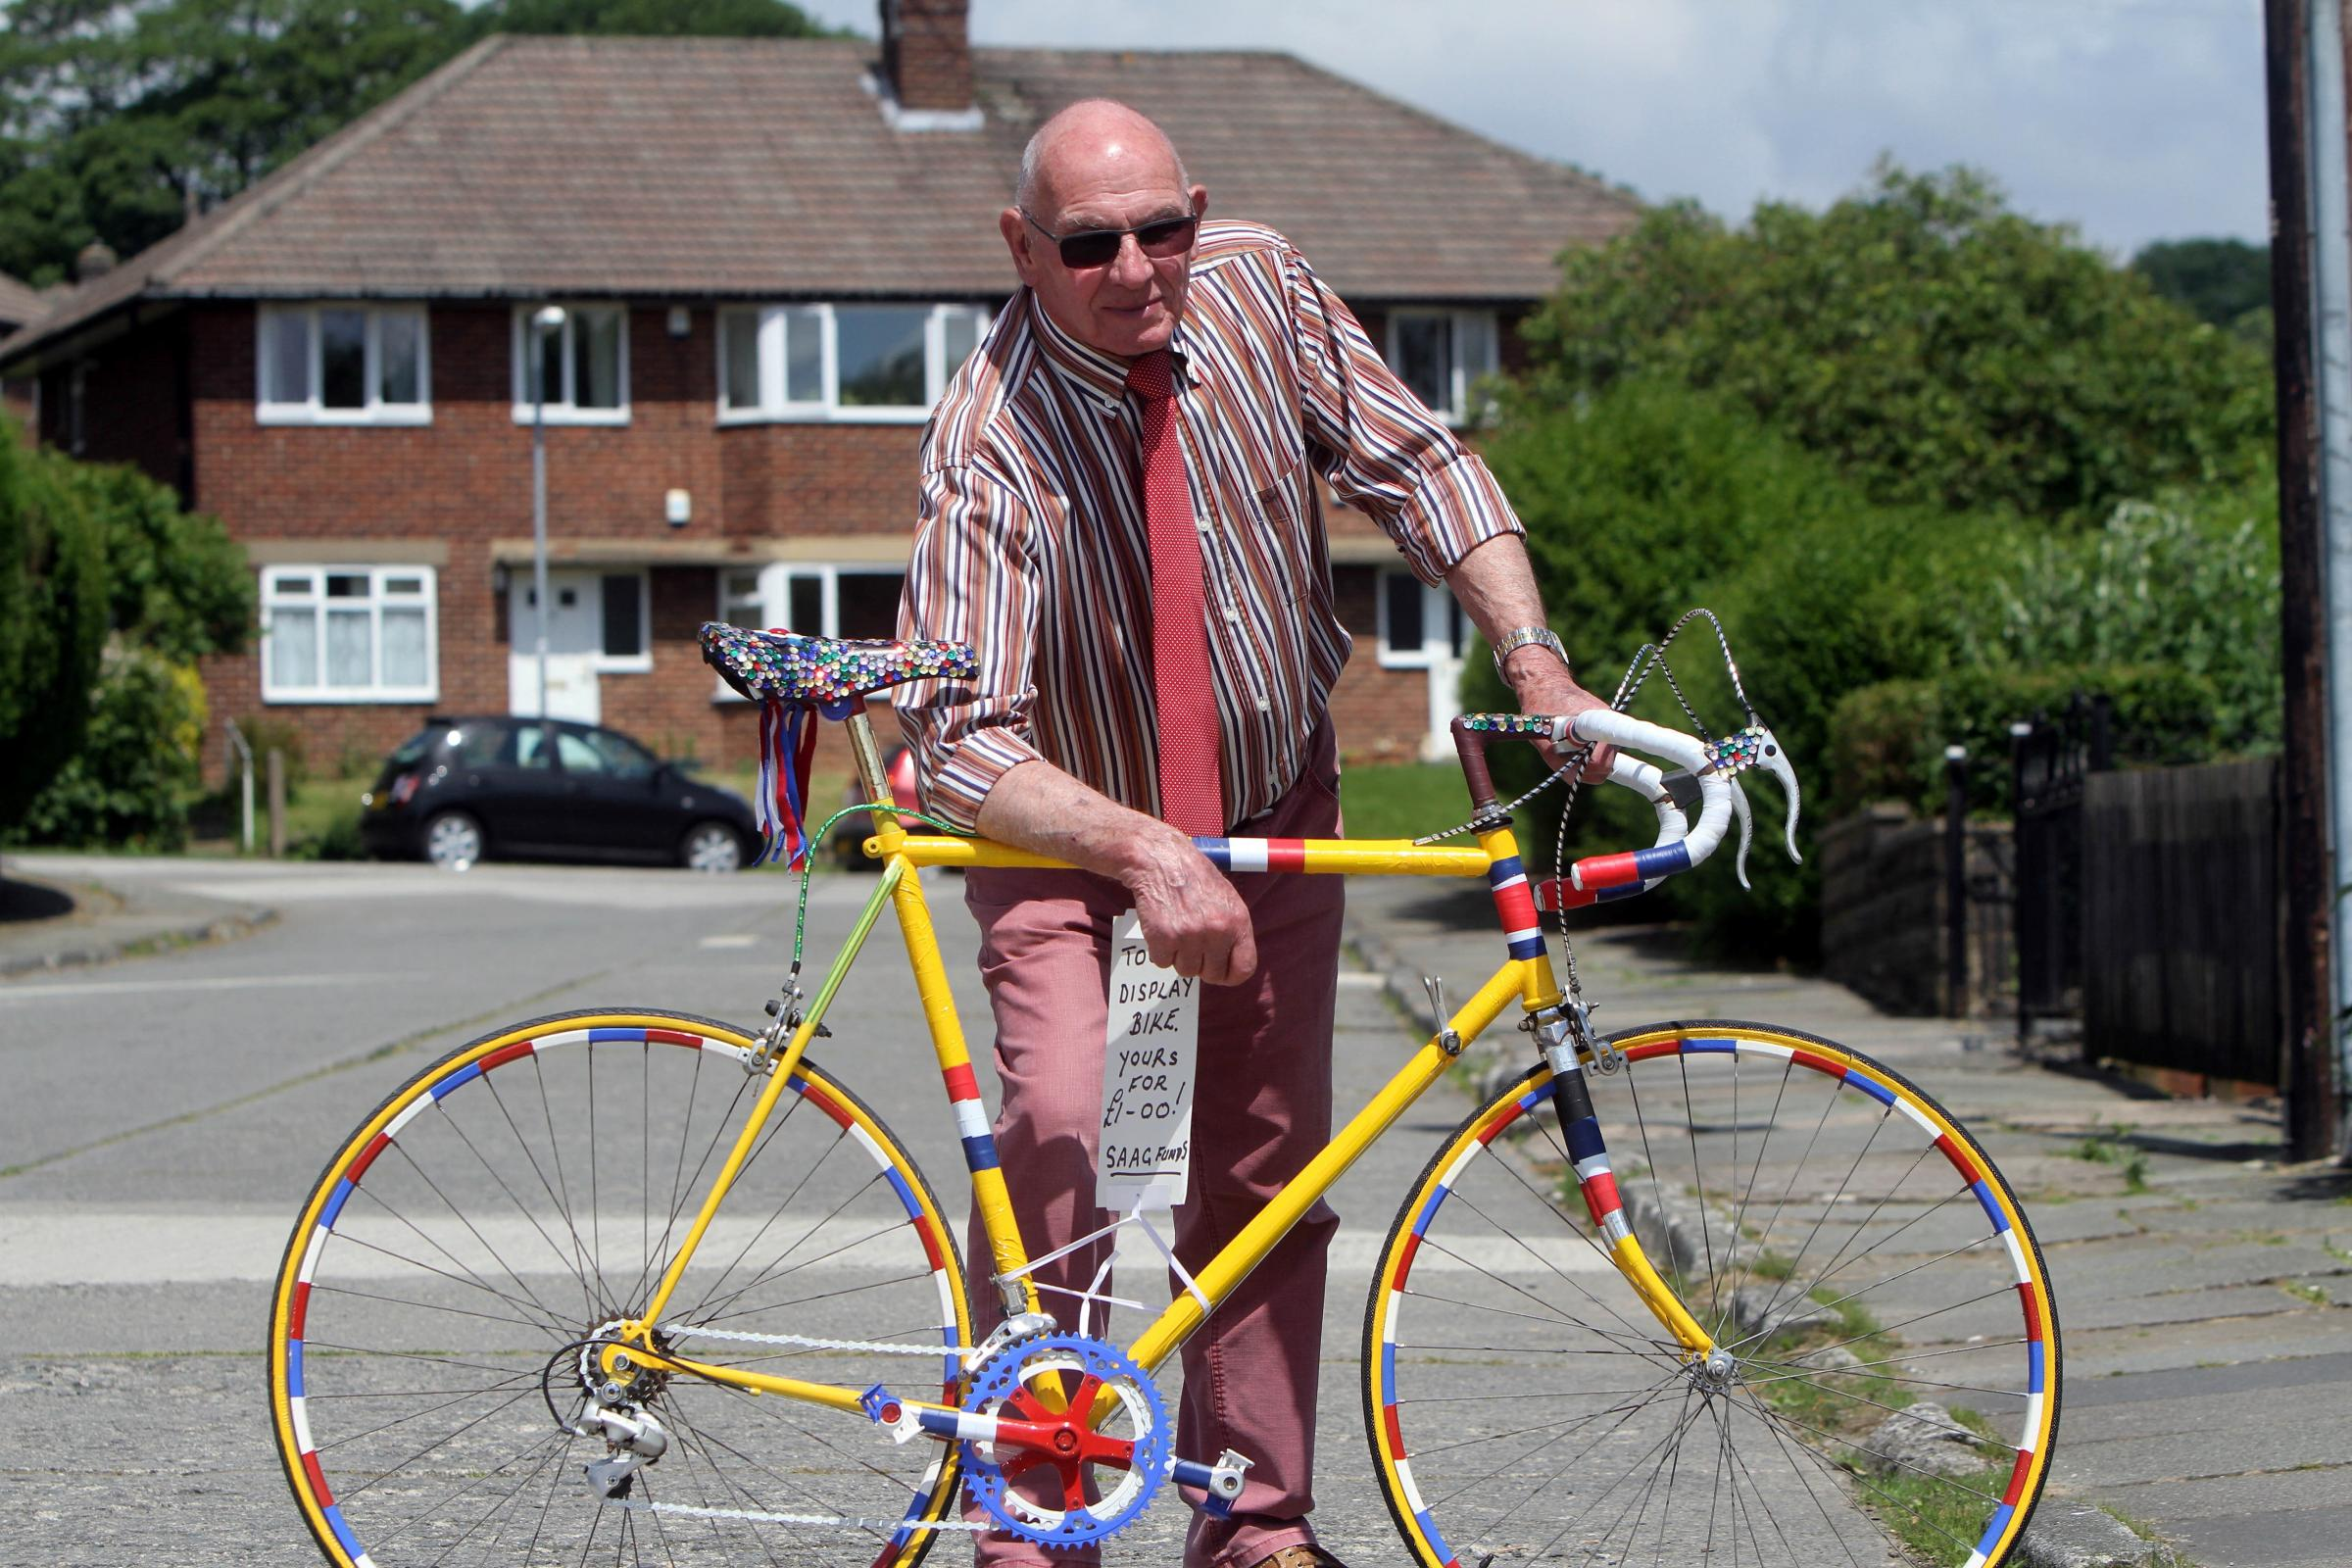 Decorated bikes helps to raise money for road repairs in Silsden